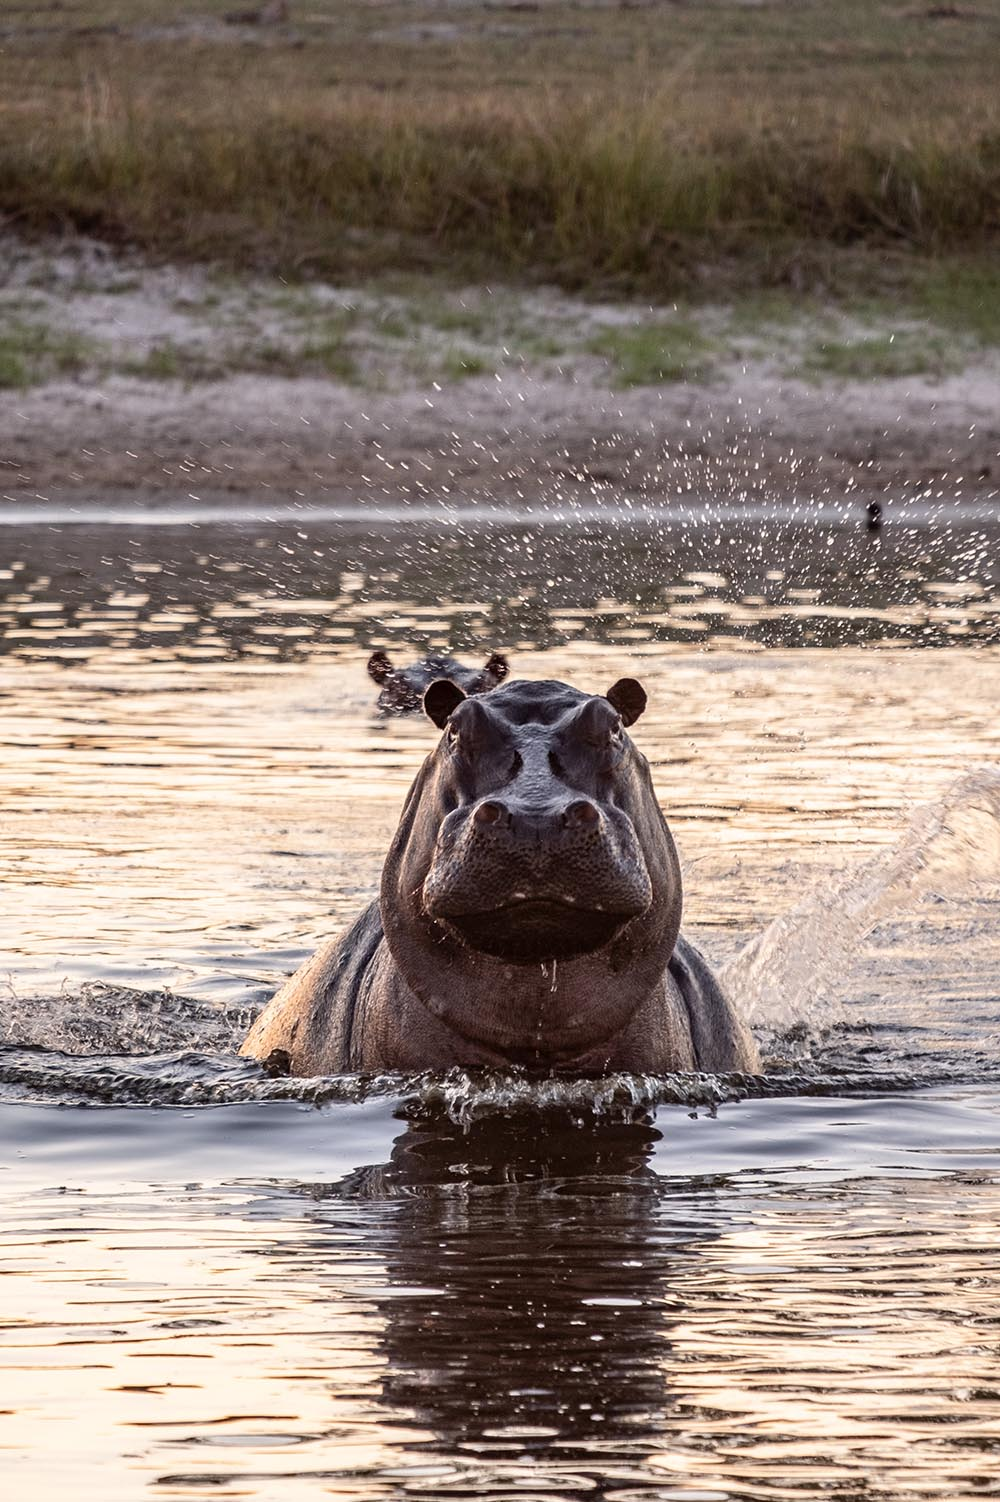 Hippo with head out of water